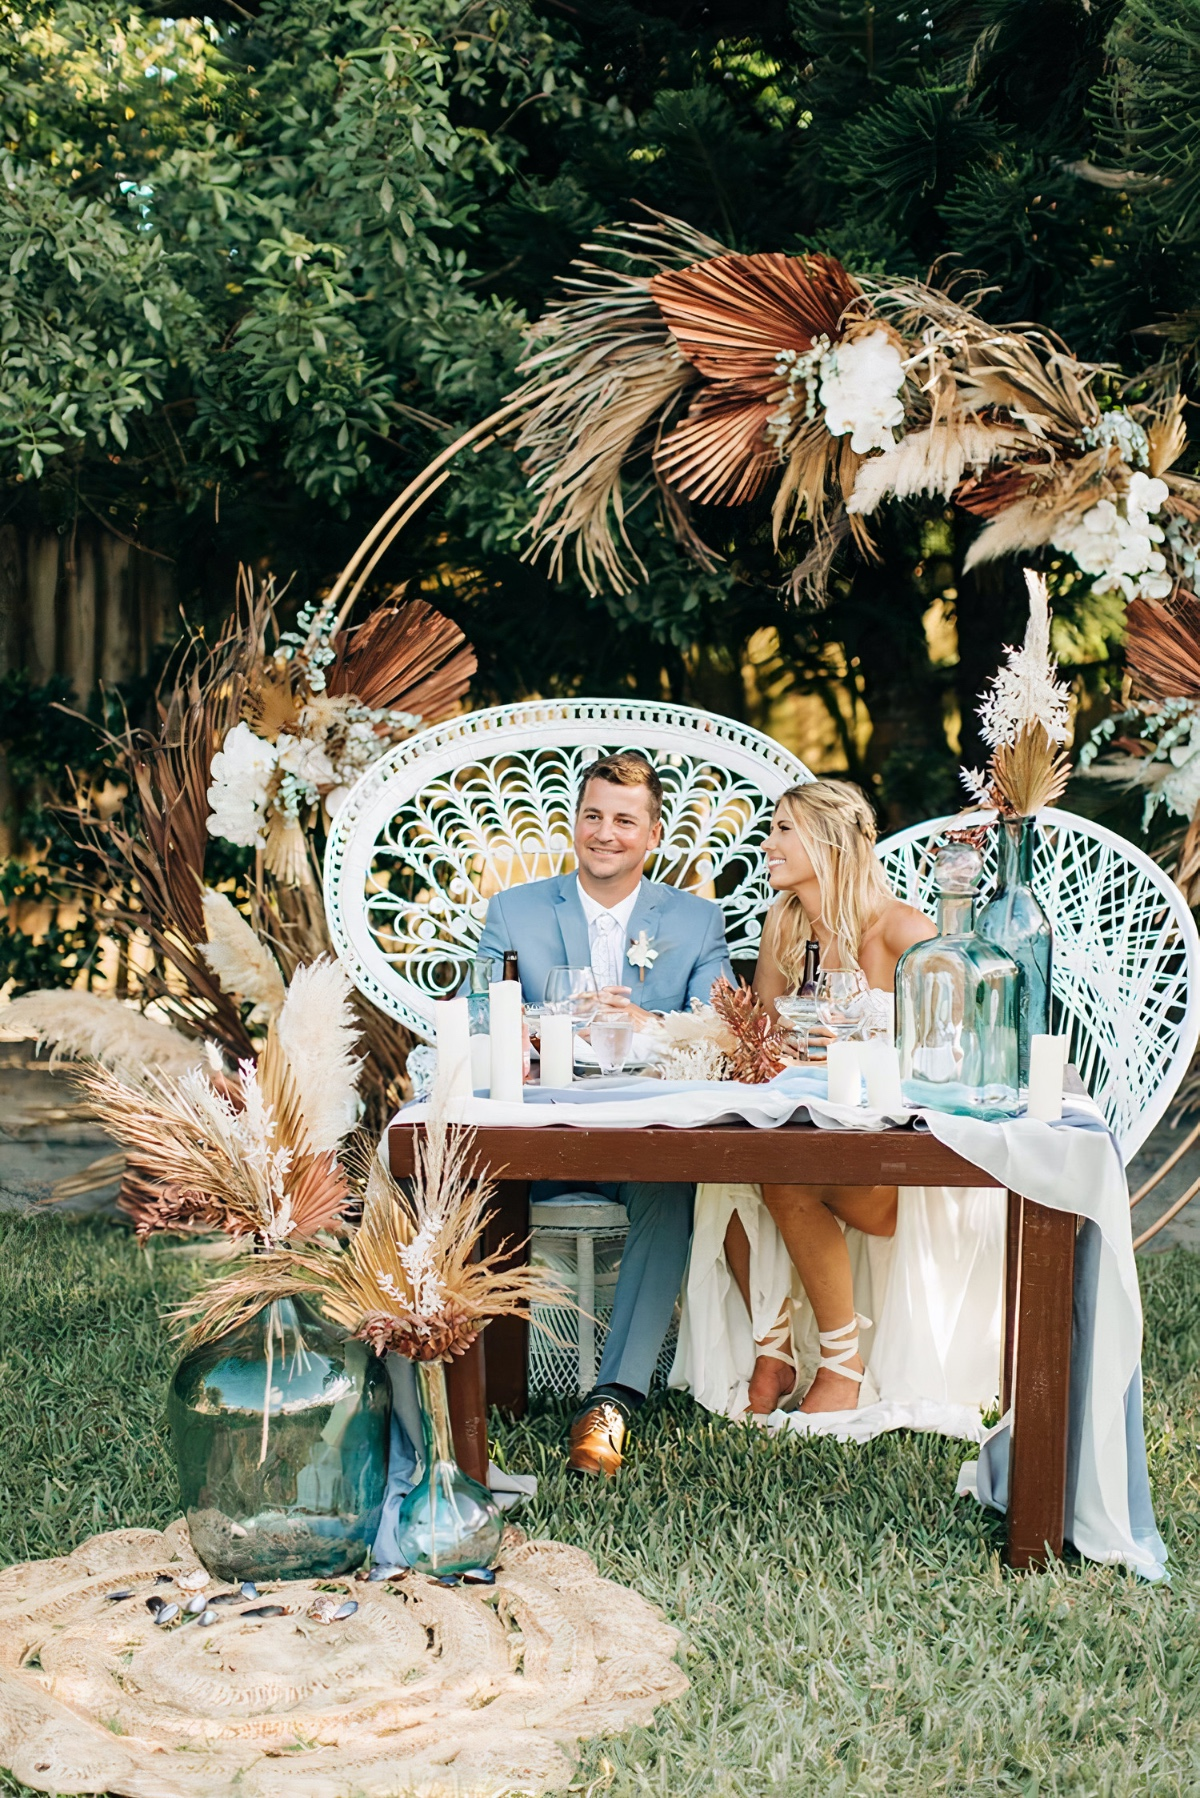 Perfect Backyard Wedding Tips from The Bride Candy